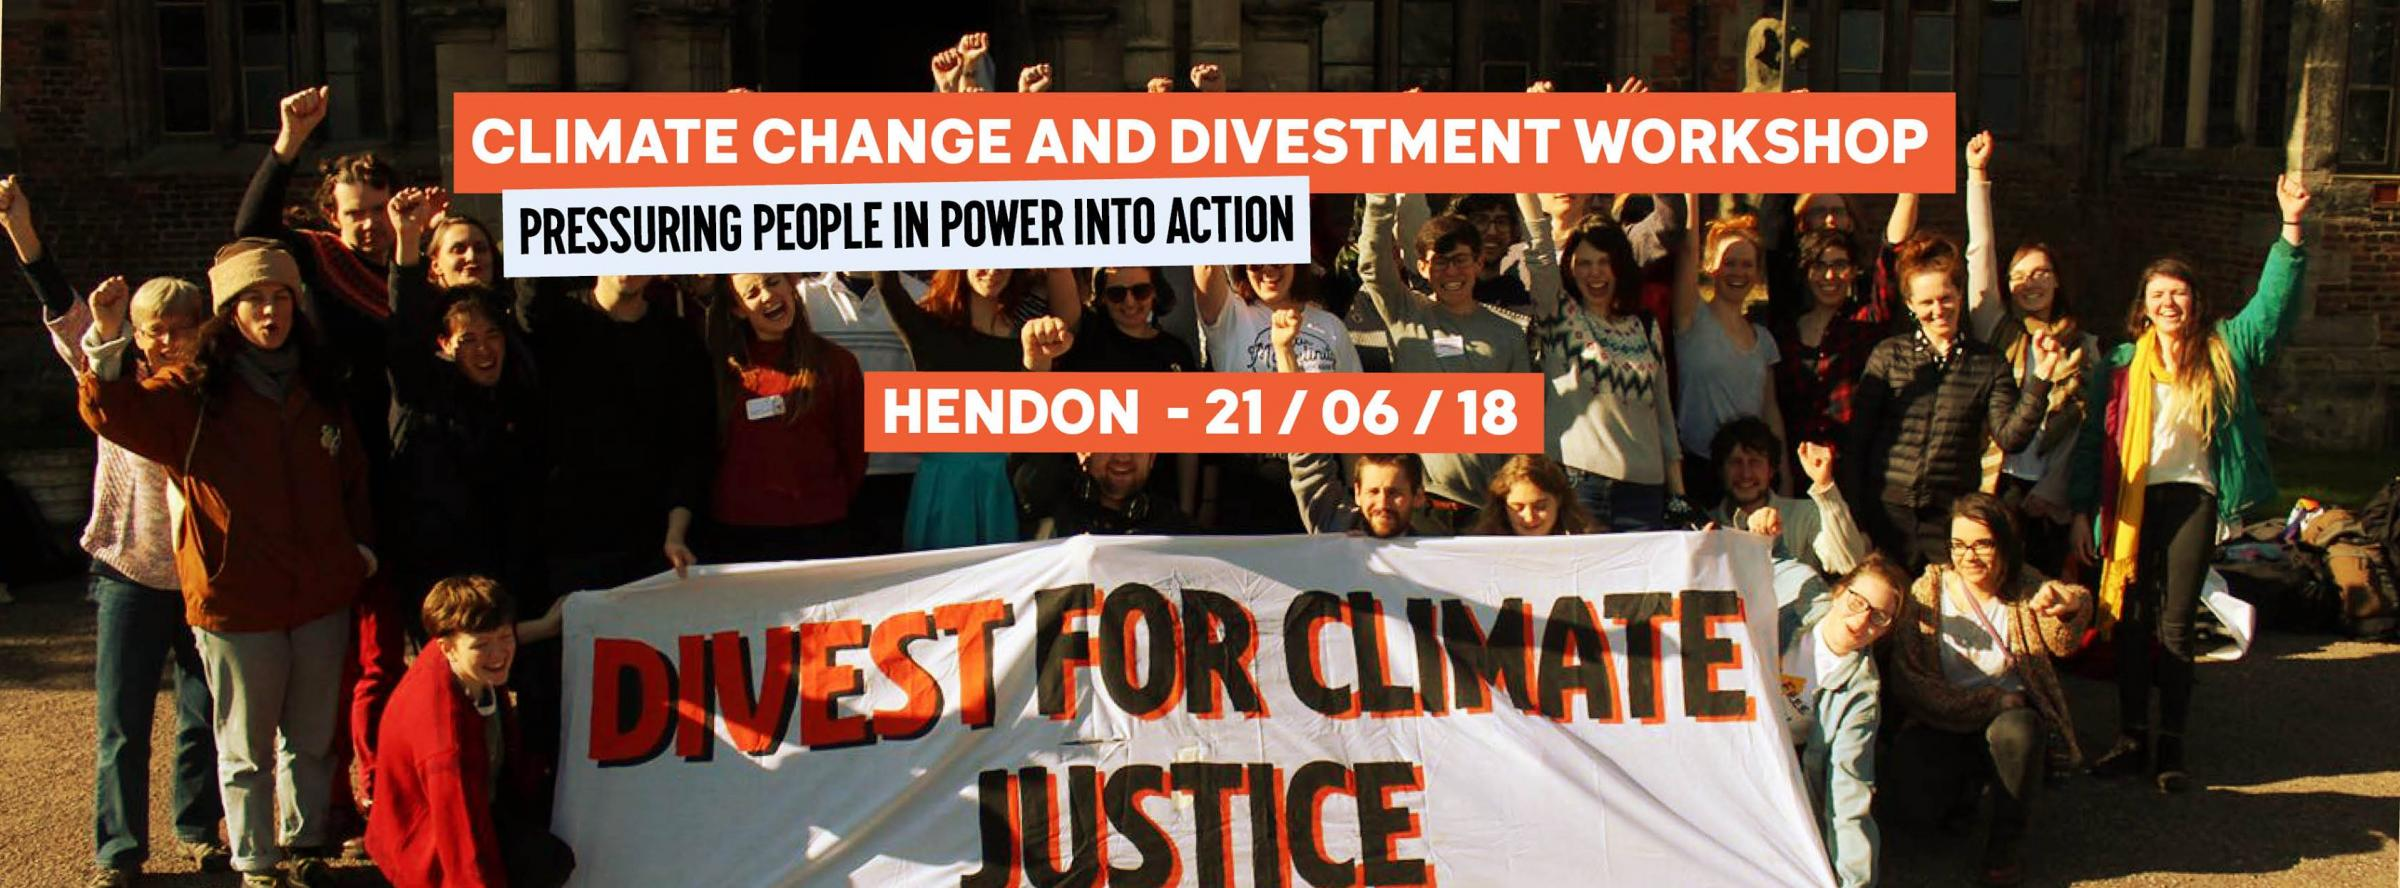 Climate Change & Divest Parliament Workshop